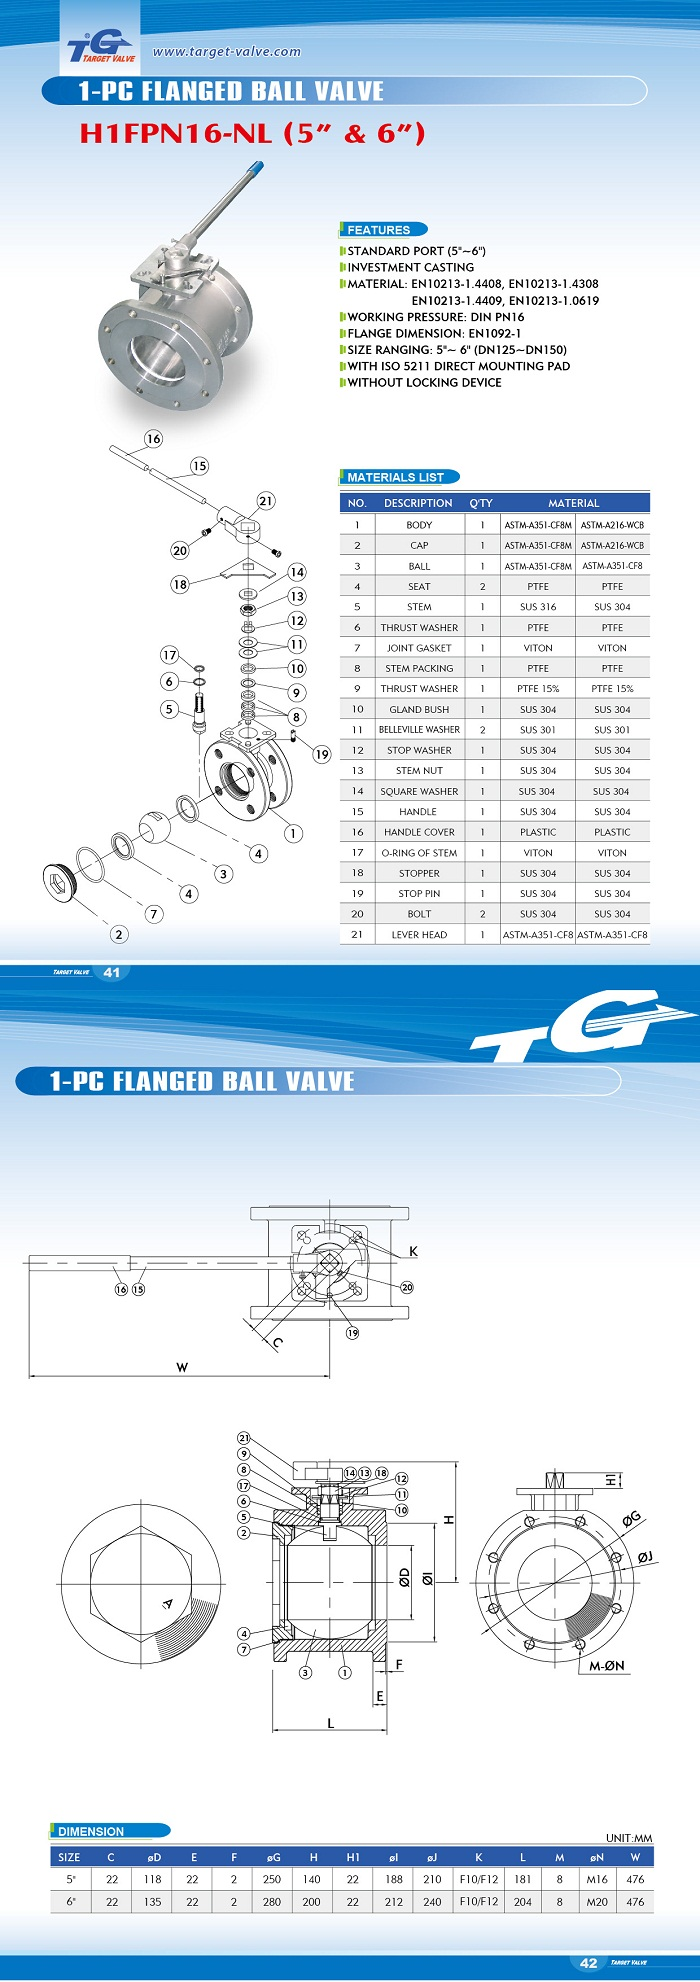 1 PC FLANGED BALL VALVE - H1FPN40